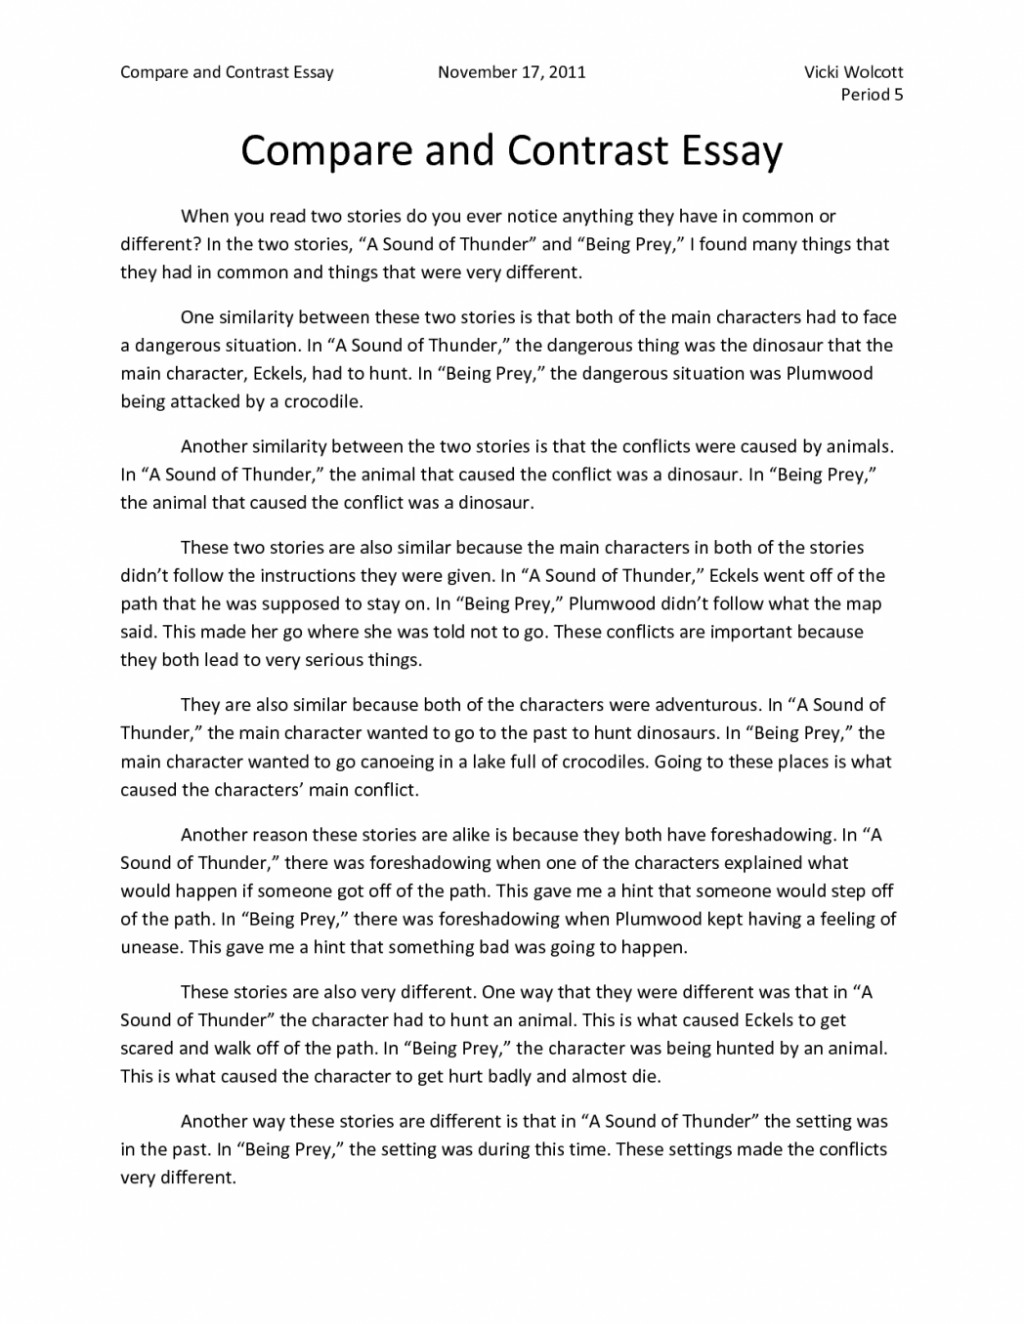 007 Free Compare And Contrast Essay Examples Example Essays Writing Comparison Of Middle School High Vs College 4th Singular Pdf Large